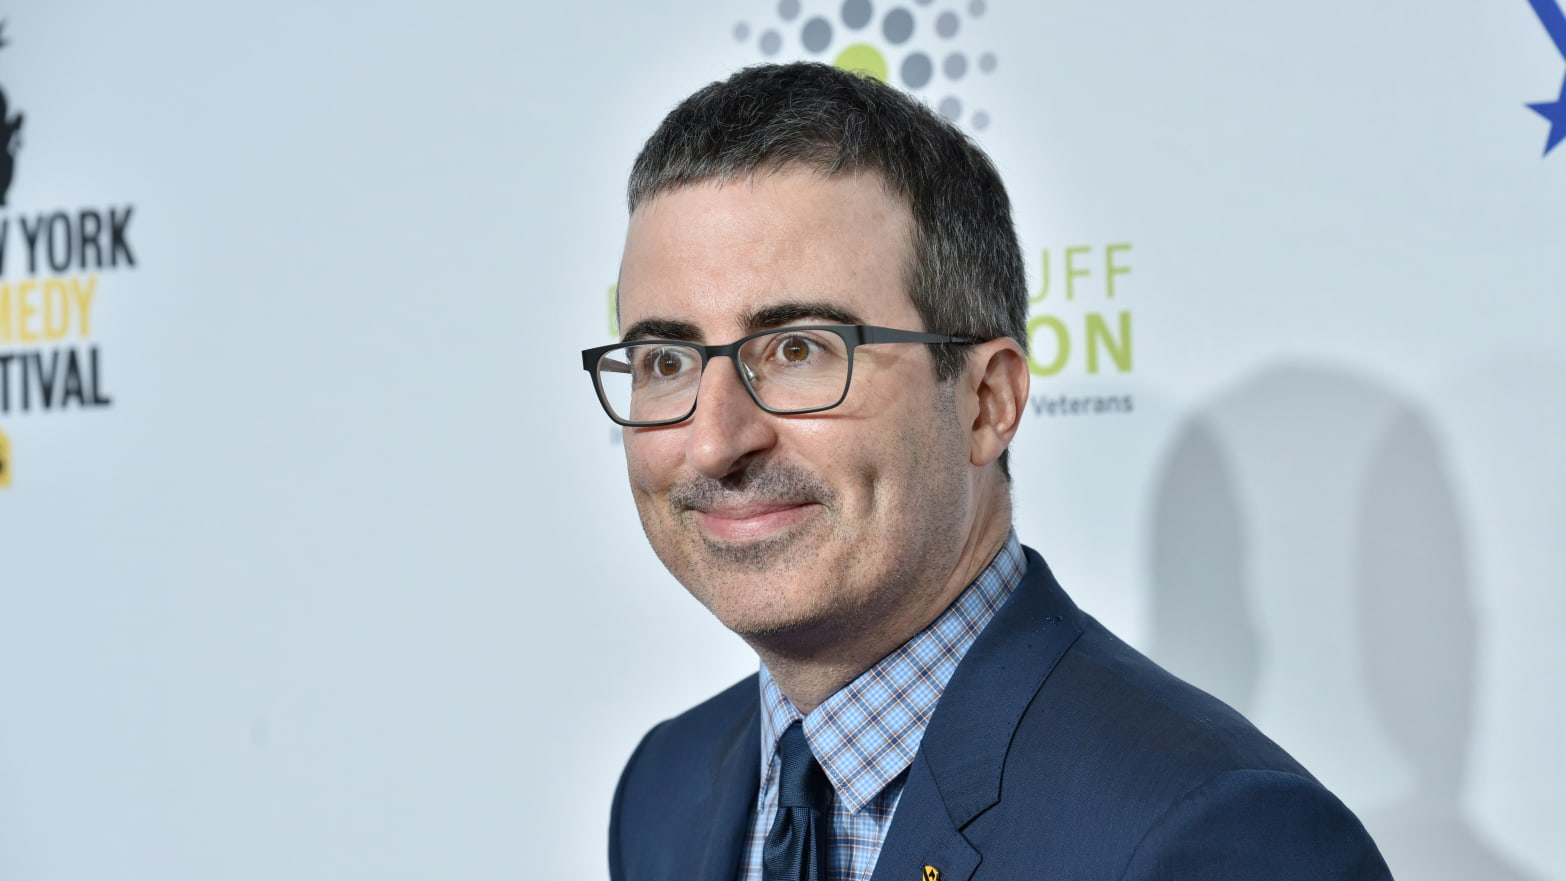 John Oliver Blasts Fox News Host Greg Gutfeld for Downplaying Possible War With Iran: 'Breathtakingly Stupid'